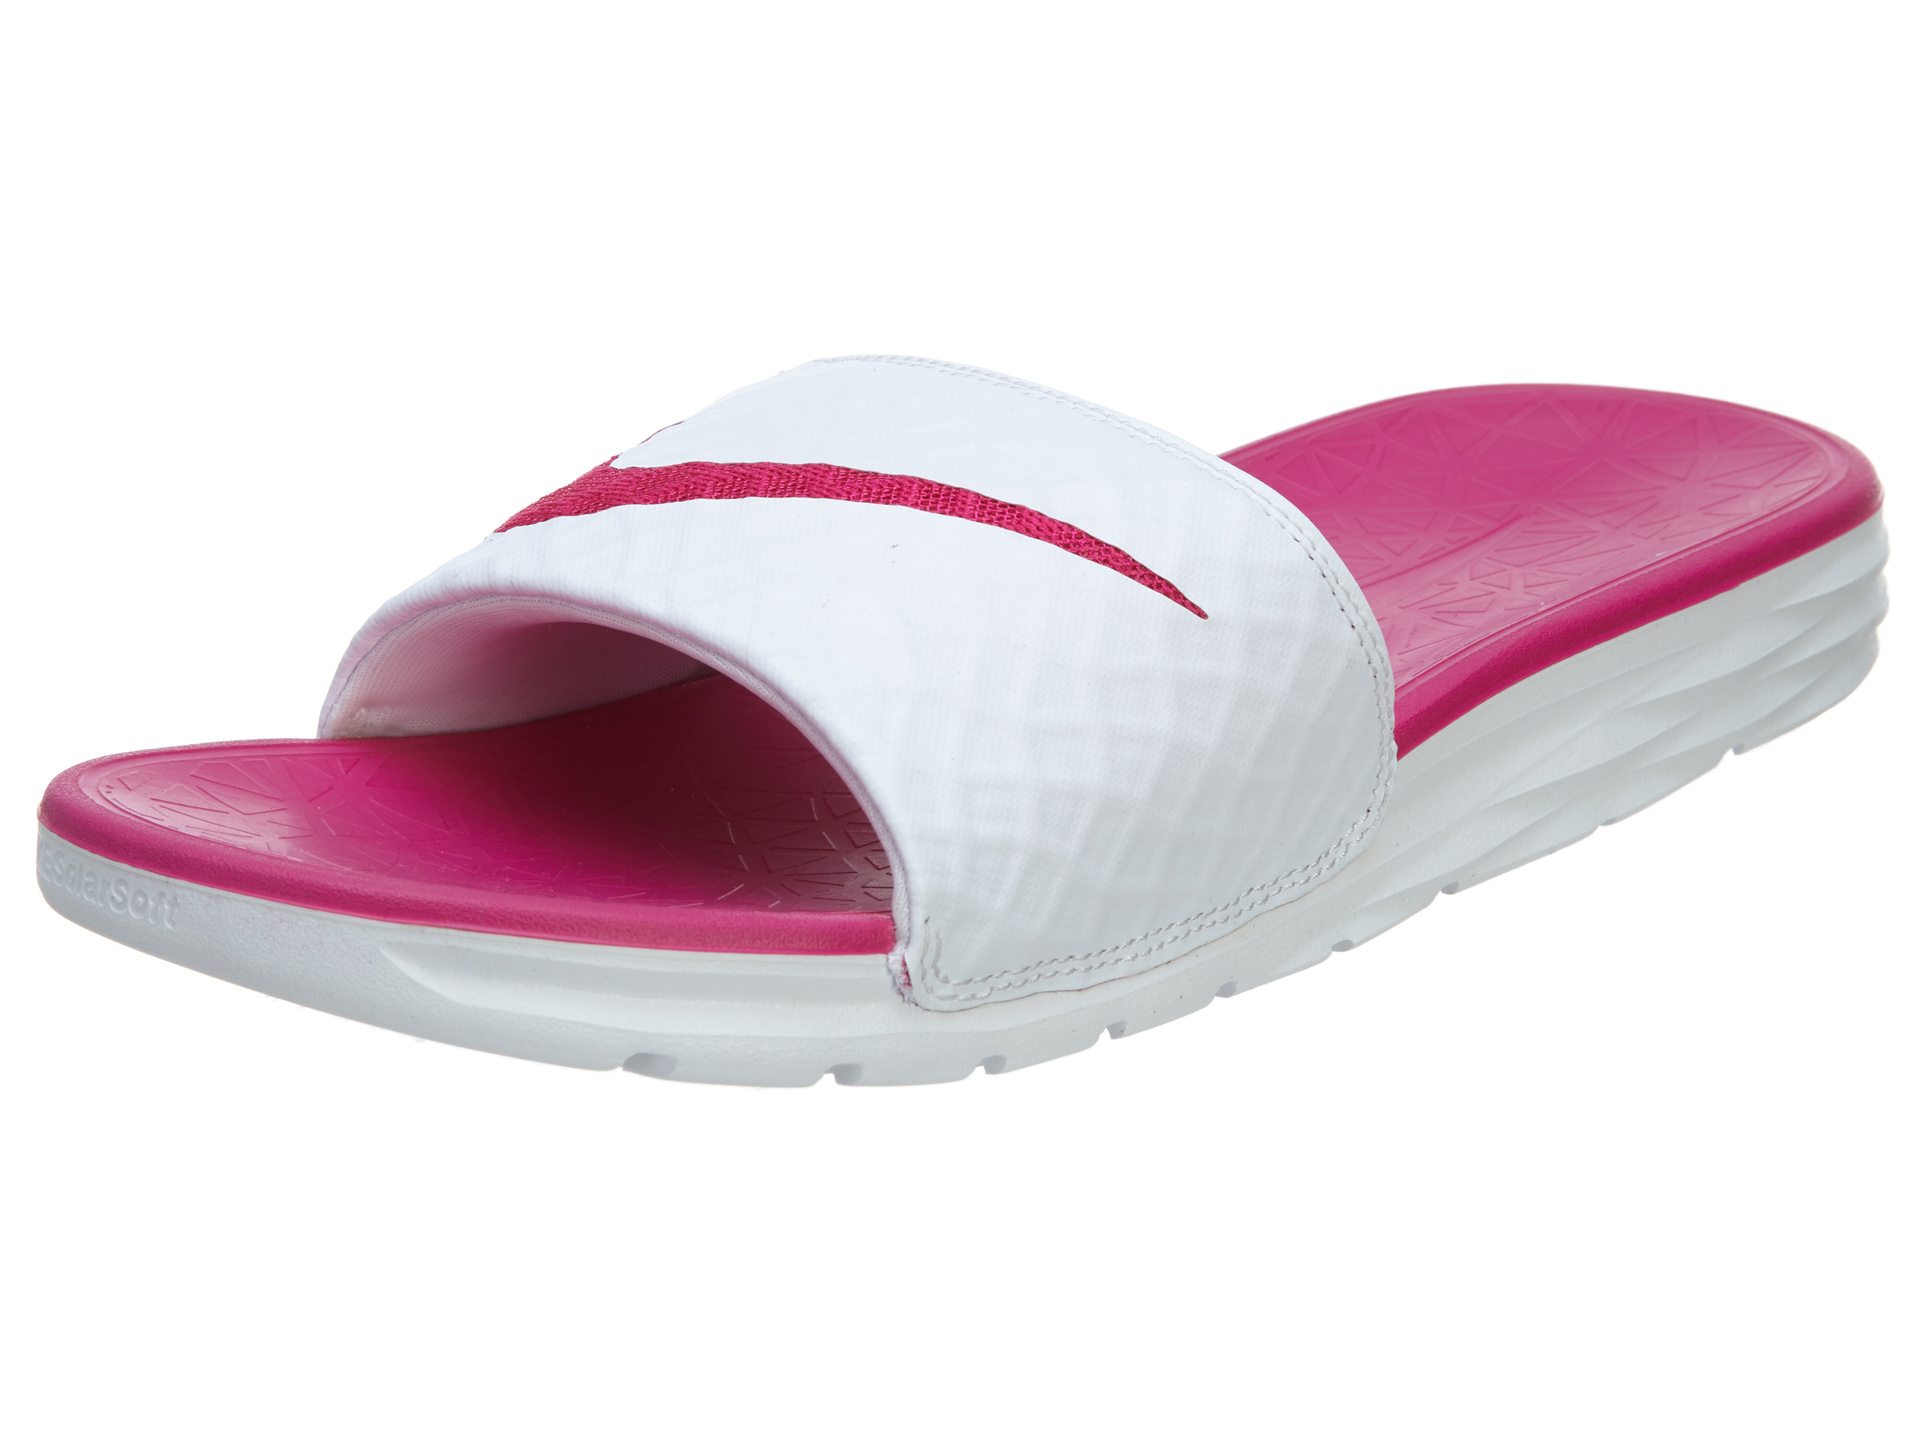 d3ada33fb7352d Nike Womens Benassi Solarsoft Slide 2 Slide Sandals 705475-160